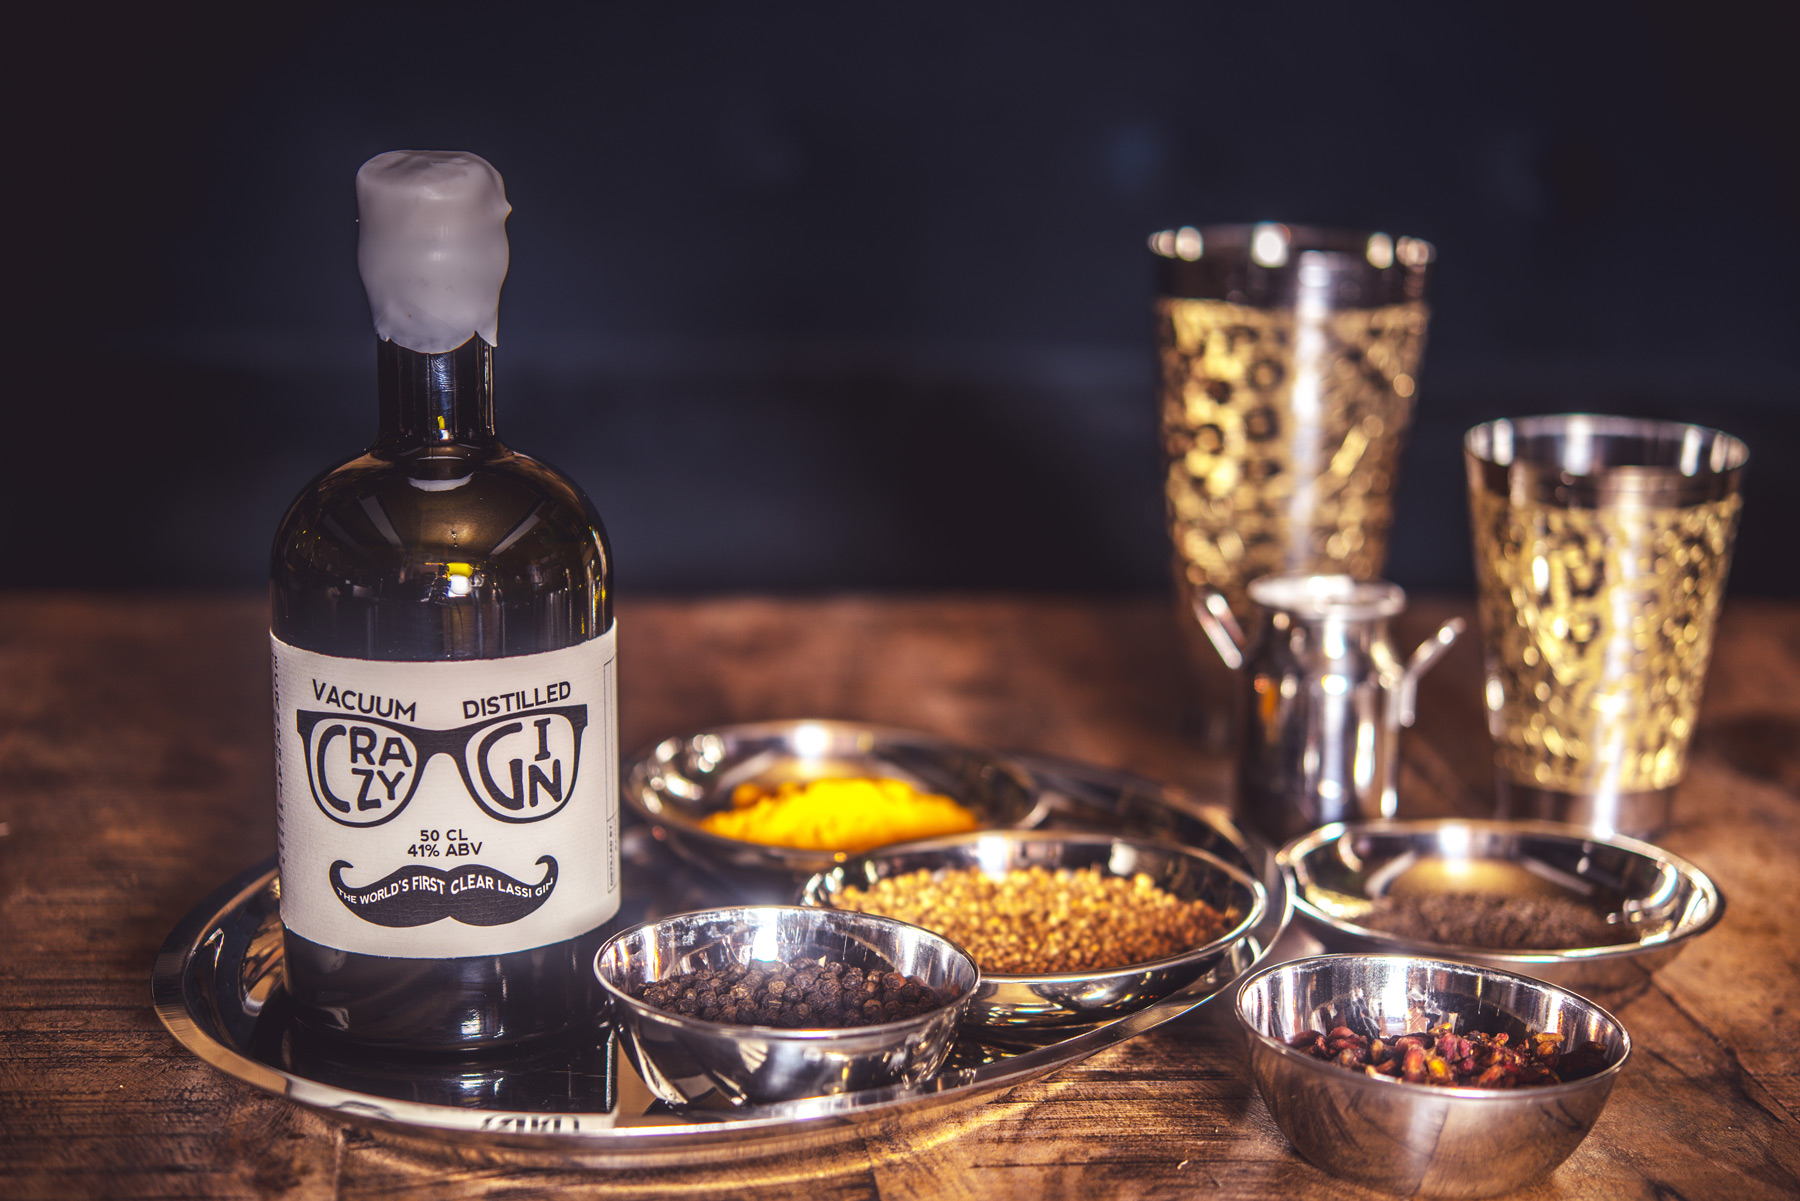 Breaking The Mould - An Interview with Crazy Gin Founder Bruce Nagra 4